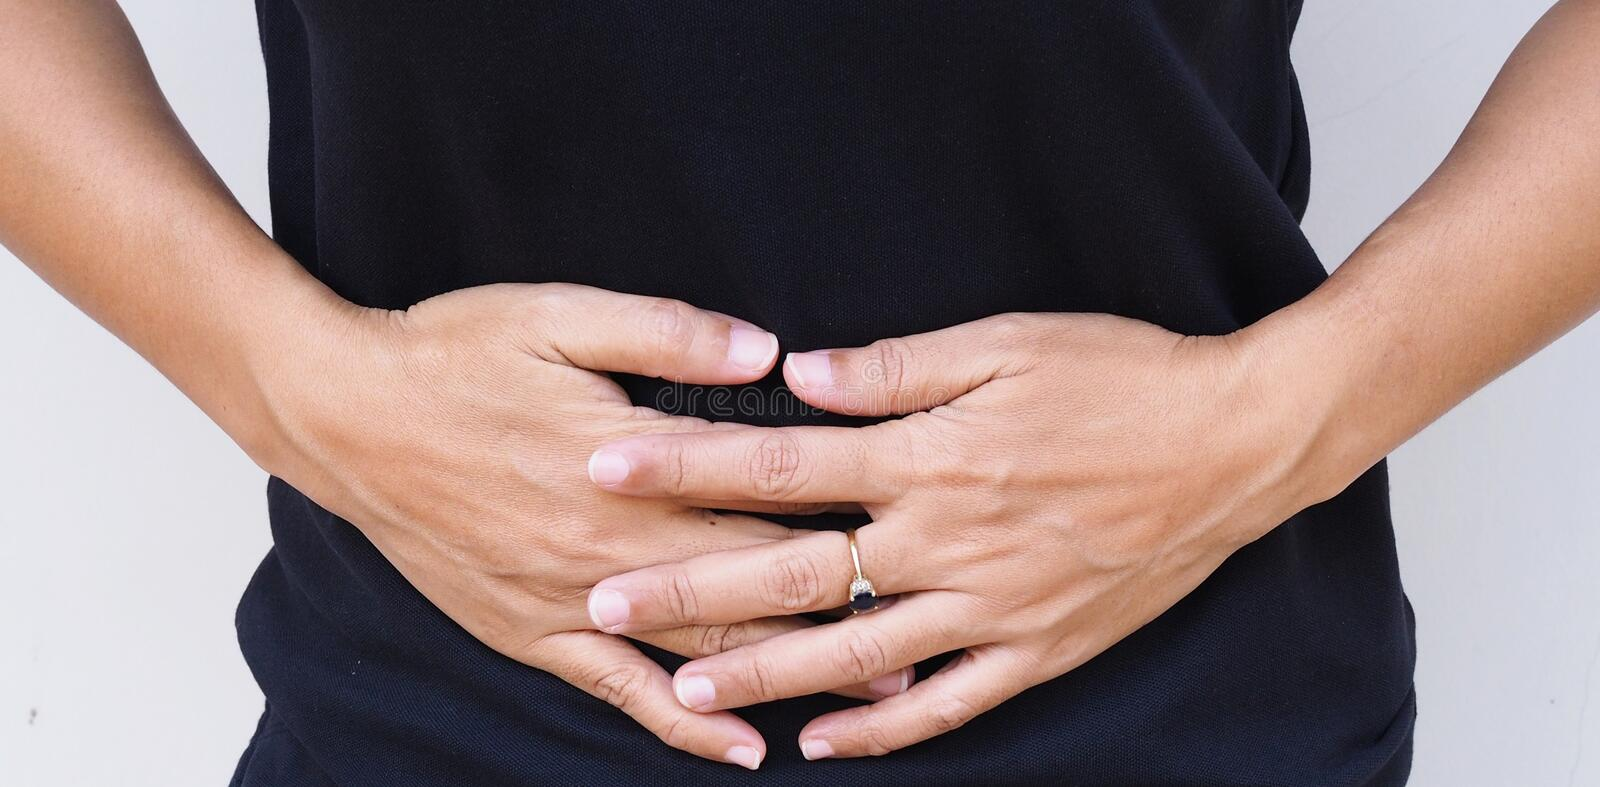 Asian women have abdominal pain stock image